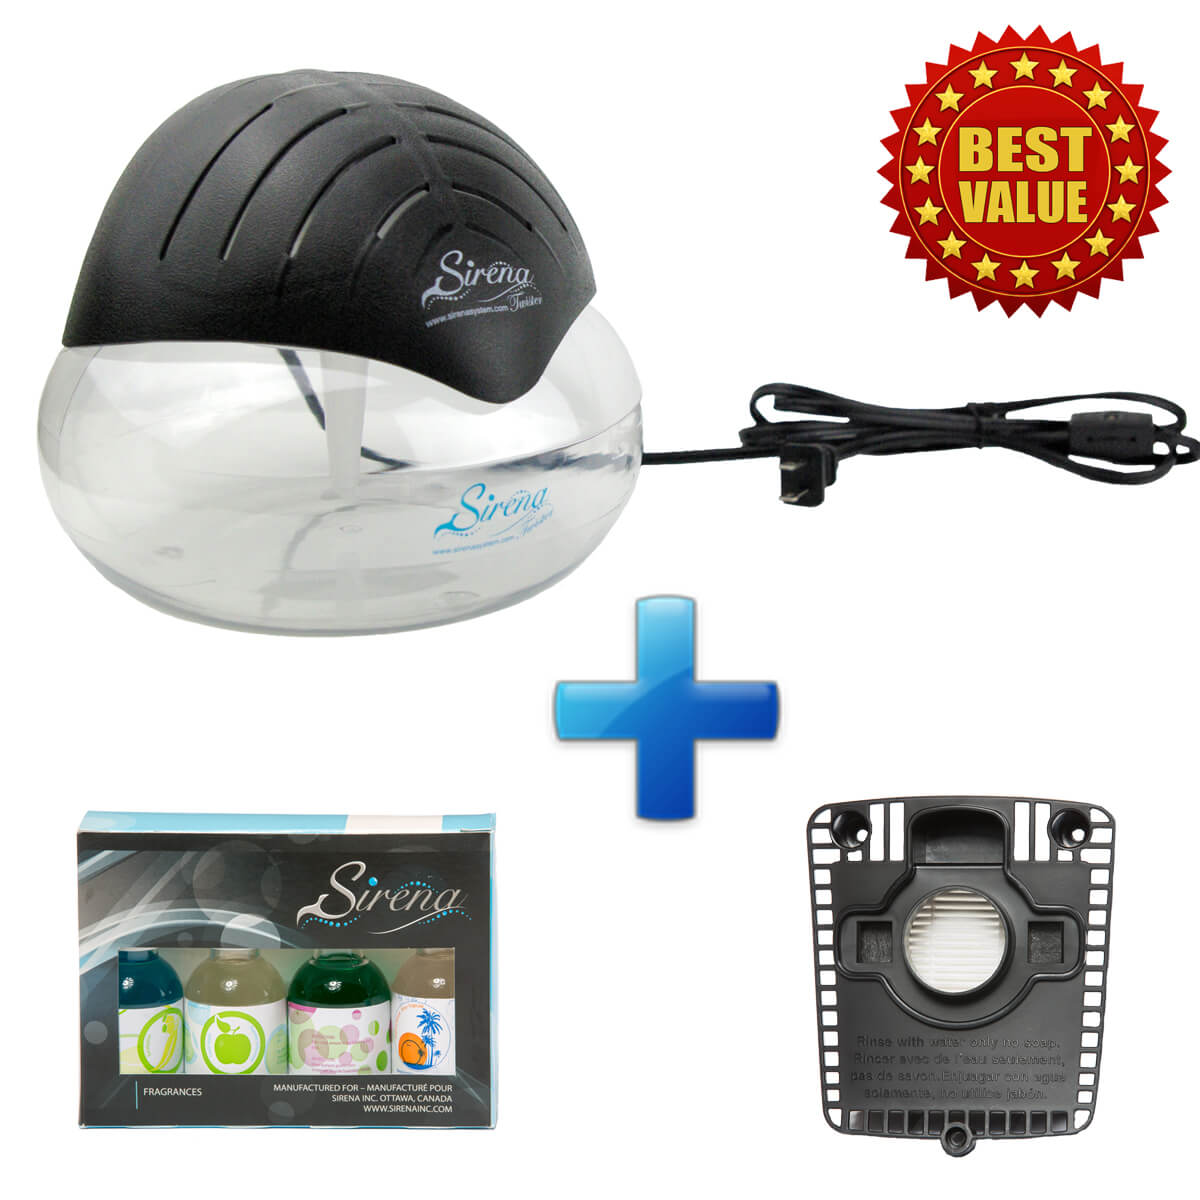 Sirena Twister (Black) + Sirena Fragrance Pack + Replacement HEPA Filter (BUNDLE)